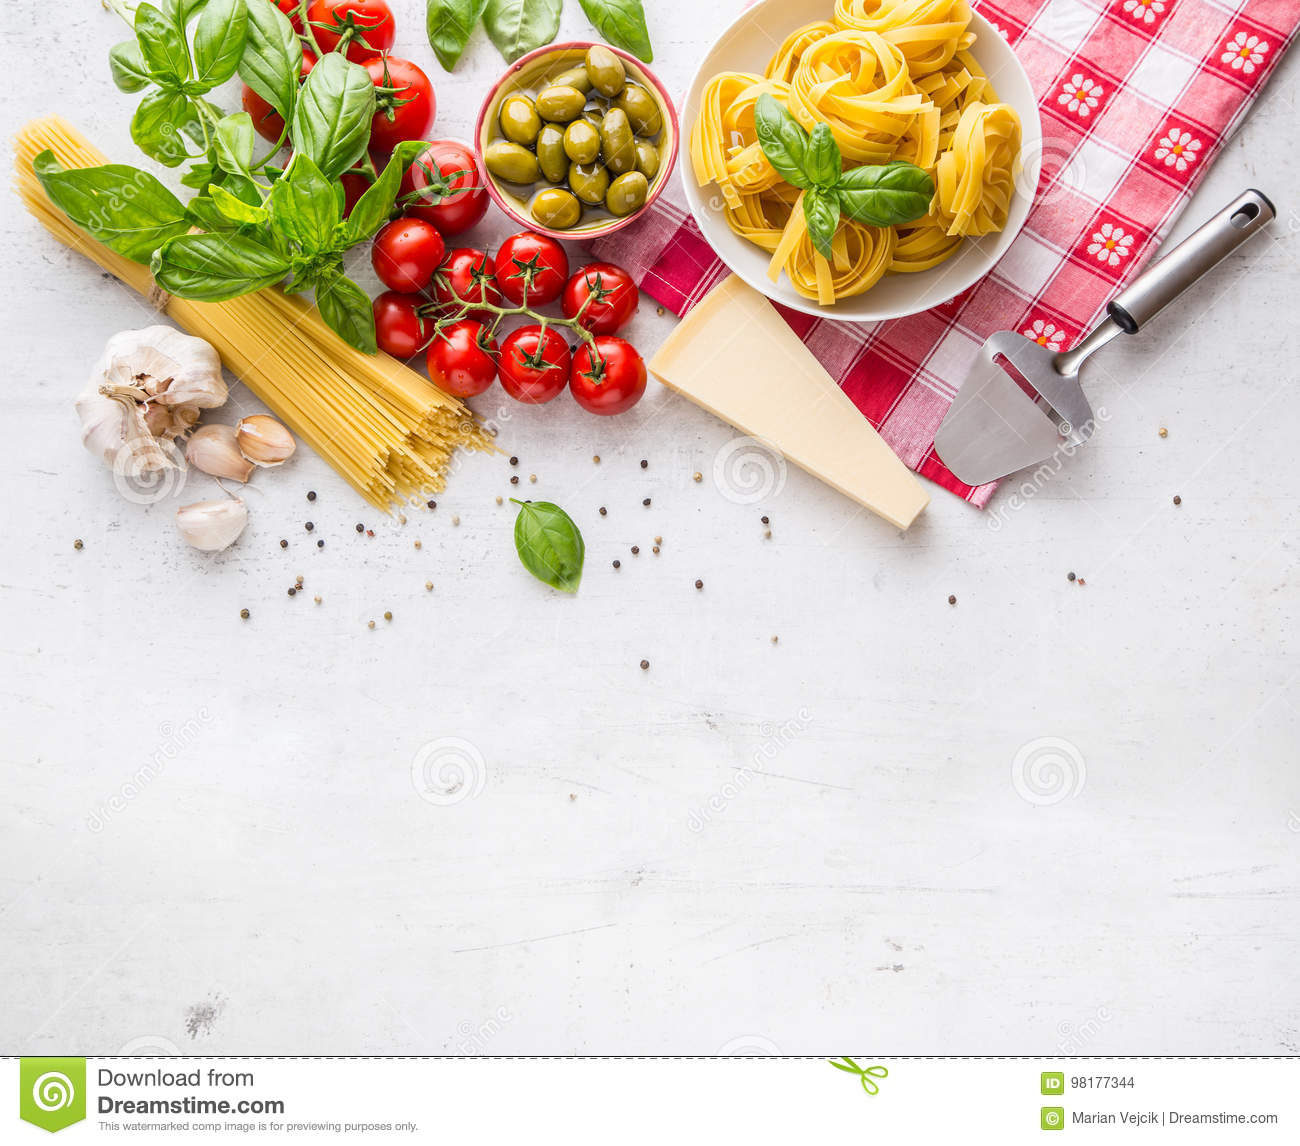 Italian food cuisine and ingredients on white concrete table. Spaghetti Tagliatelle olives olive oil tomatoes parmesan cheese.